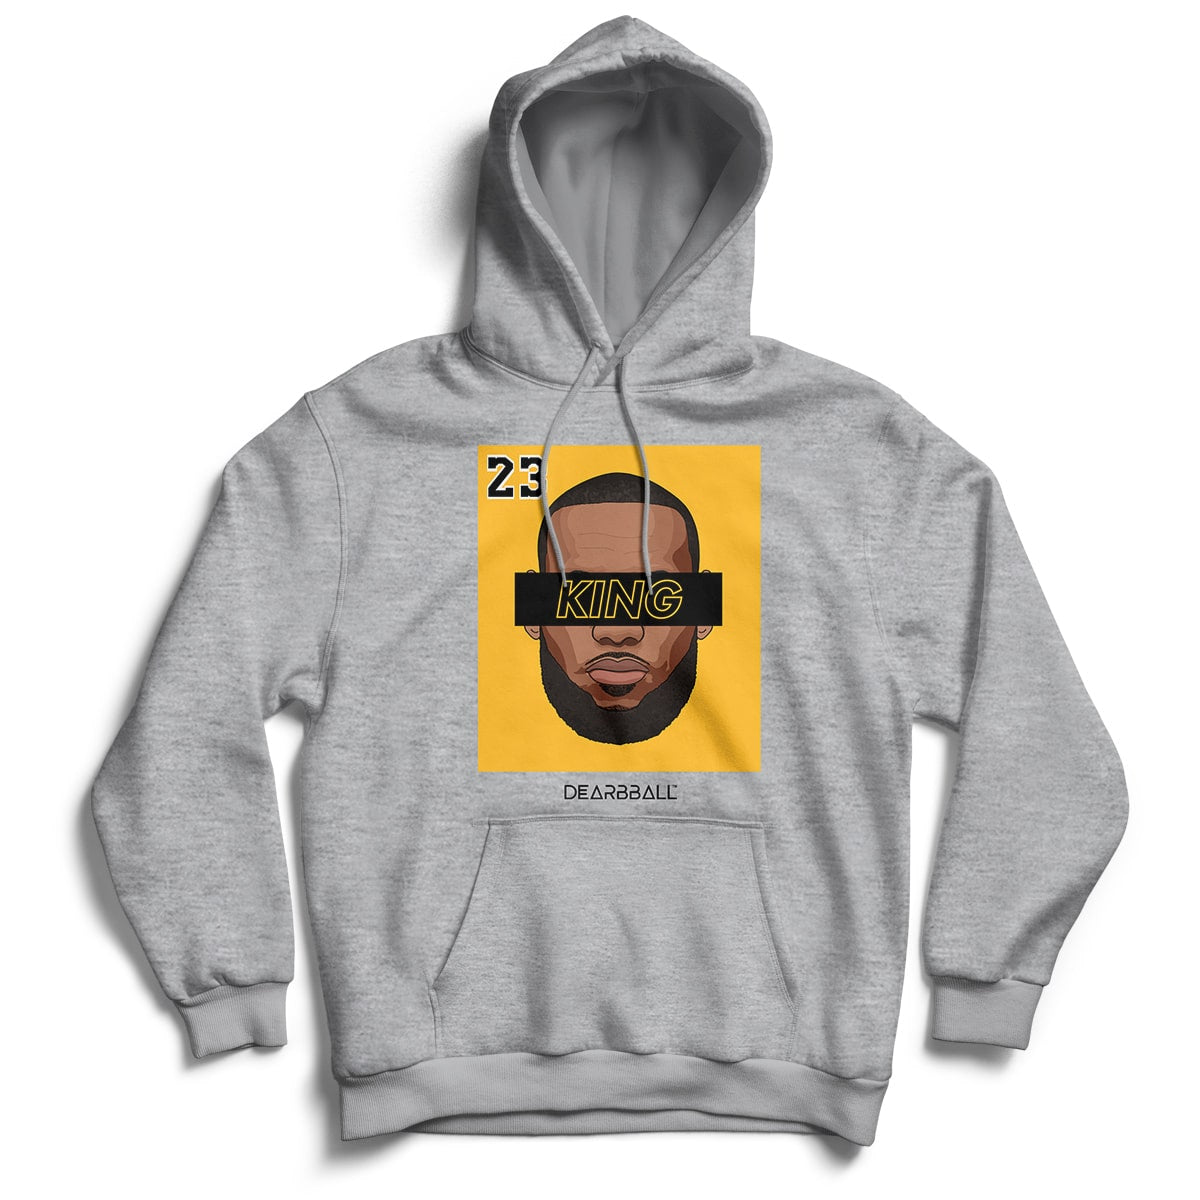 Lebron James Hoodie - KING 23 Gold Black Los Angeles Lakers Basketball Dearbball grey